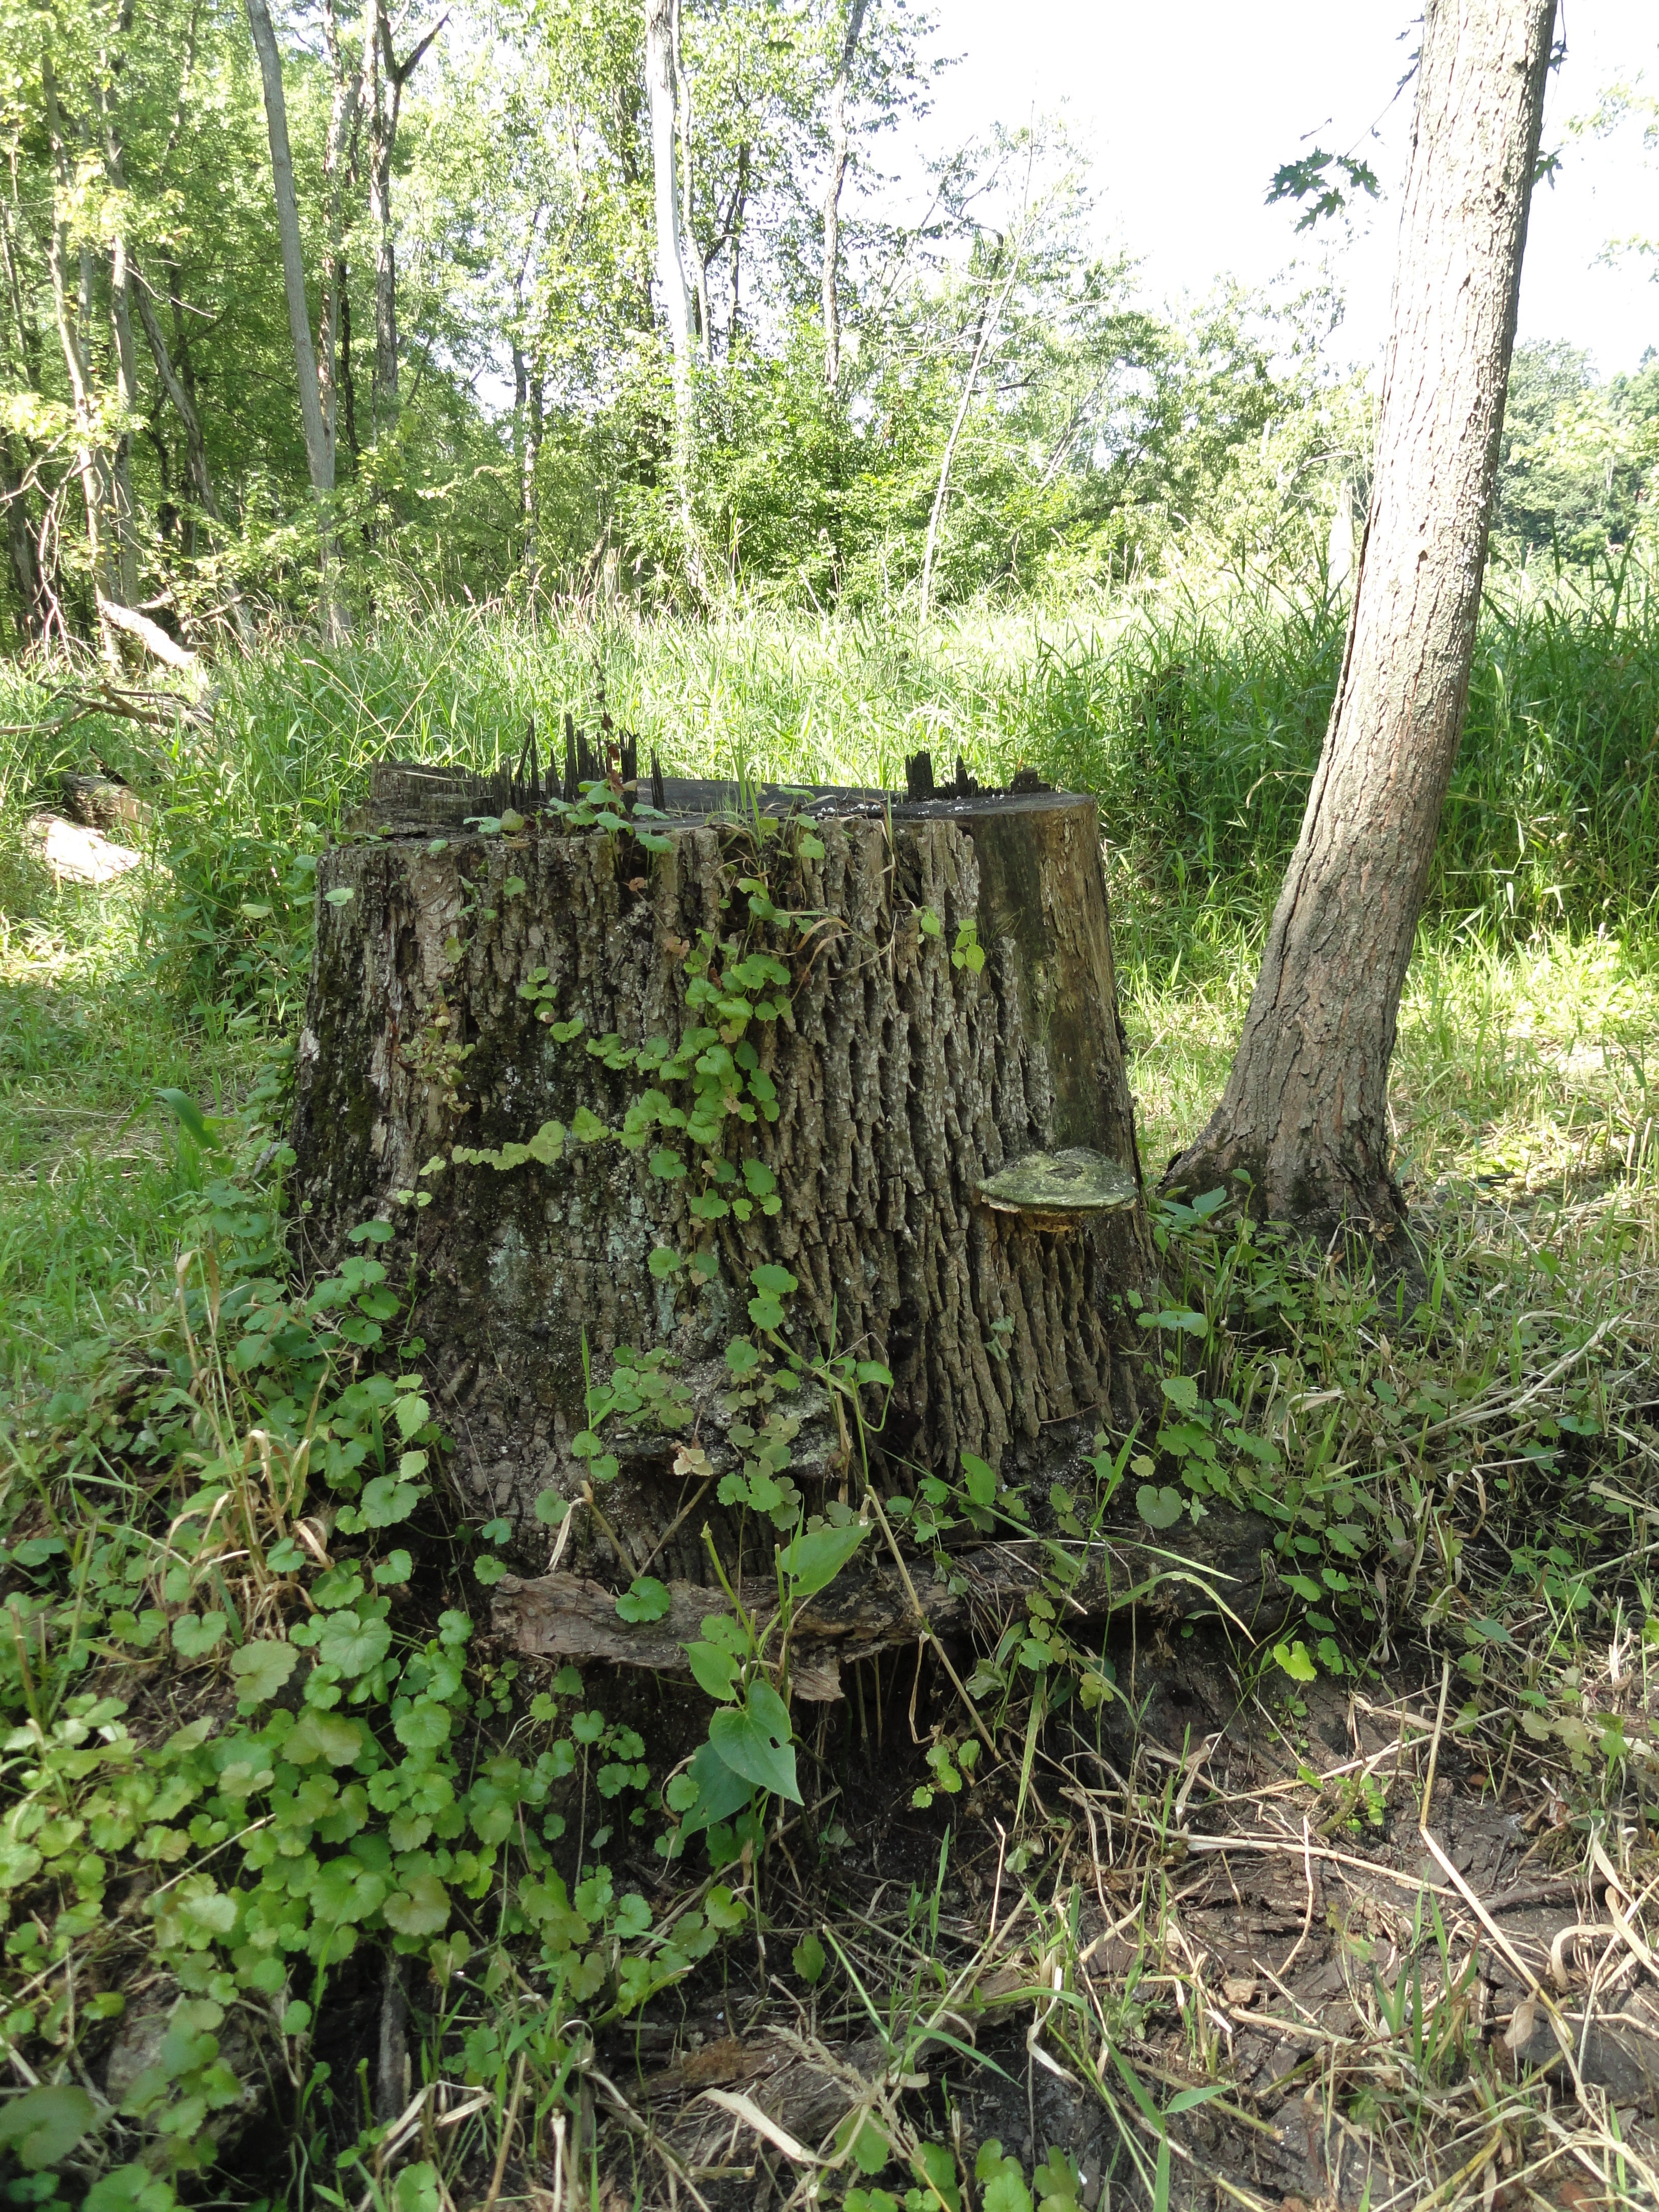 A tree stump along the trail for the WMU Fort St. Joseph open house. Vines and old shelf mushrooms cover it.